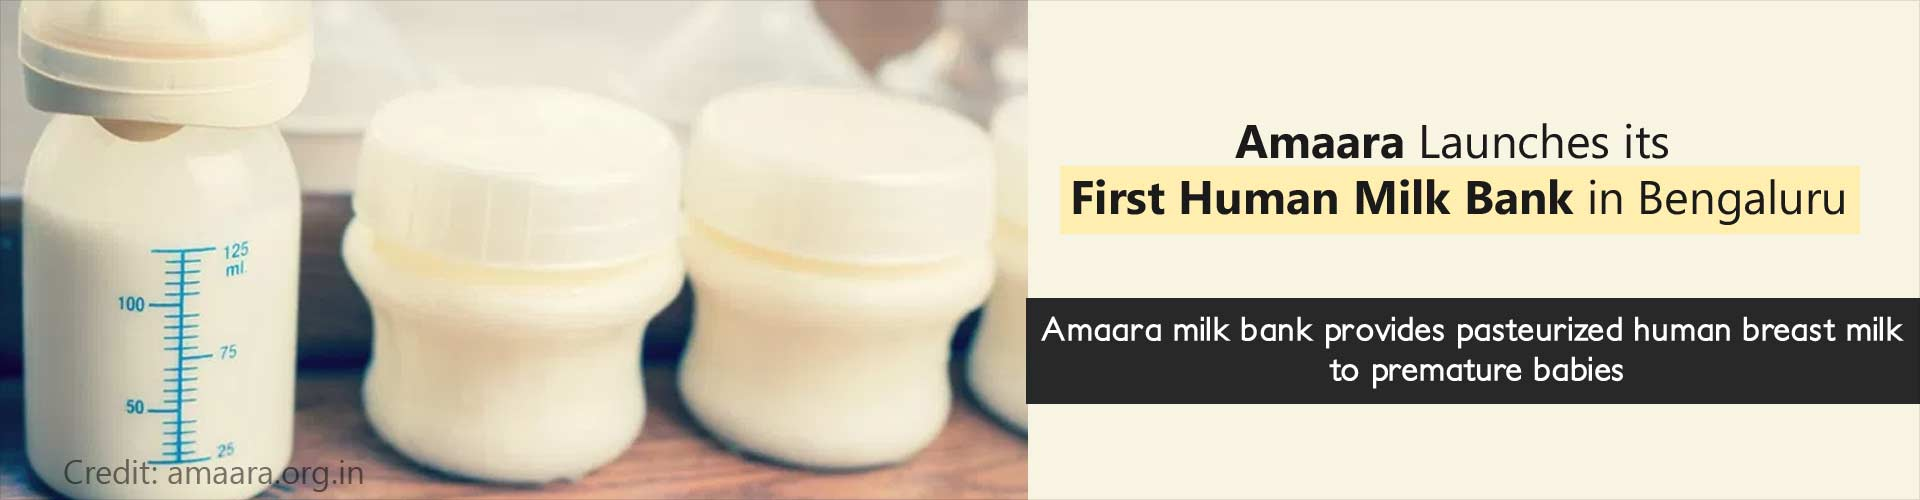 "Human Breast Milk Bank ""Amaara"" - Interviewed with Co-Founder of Aamara"